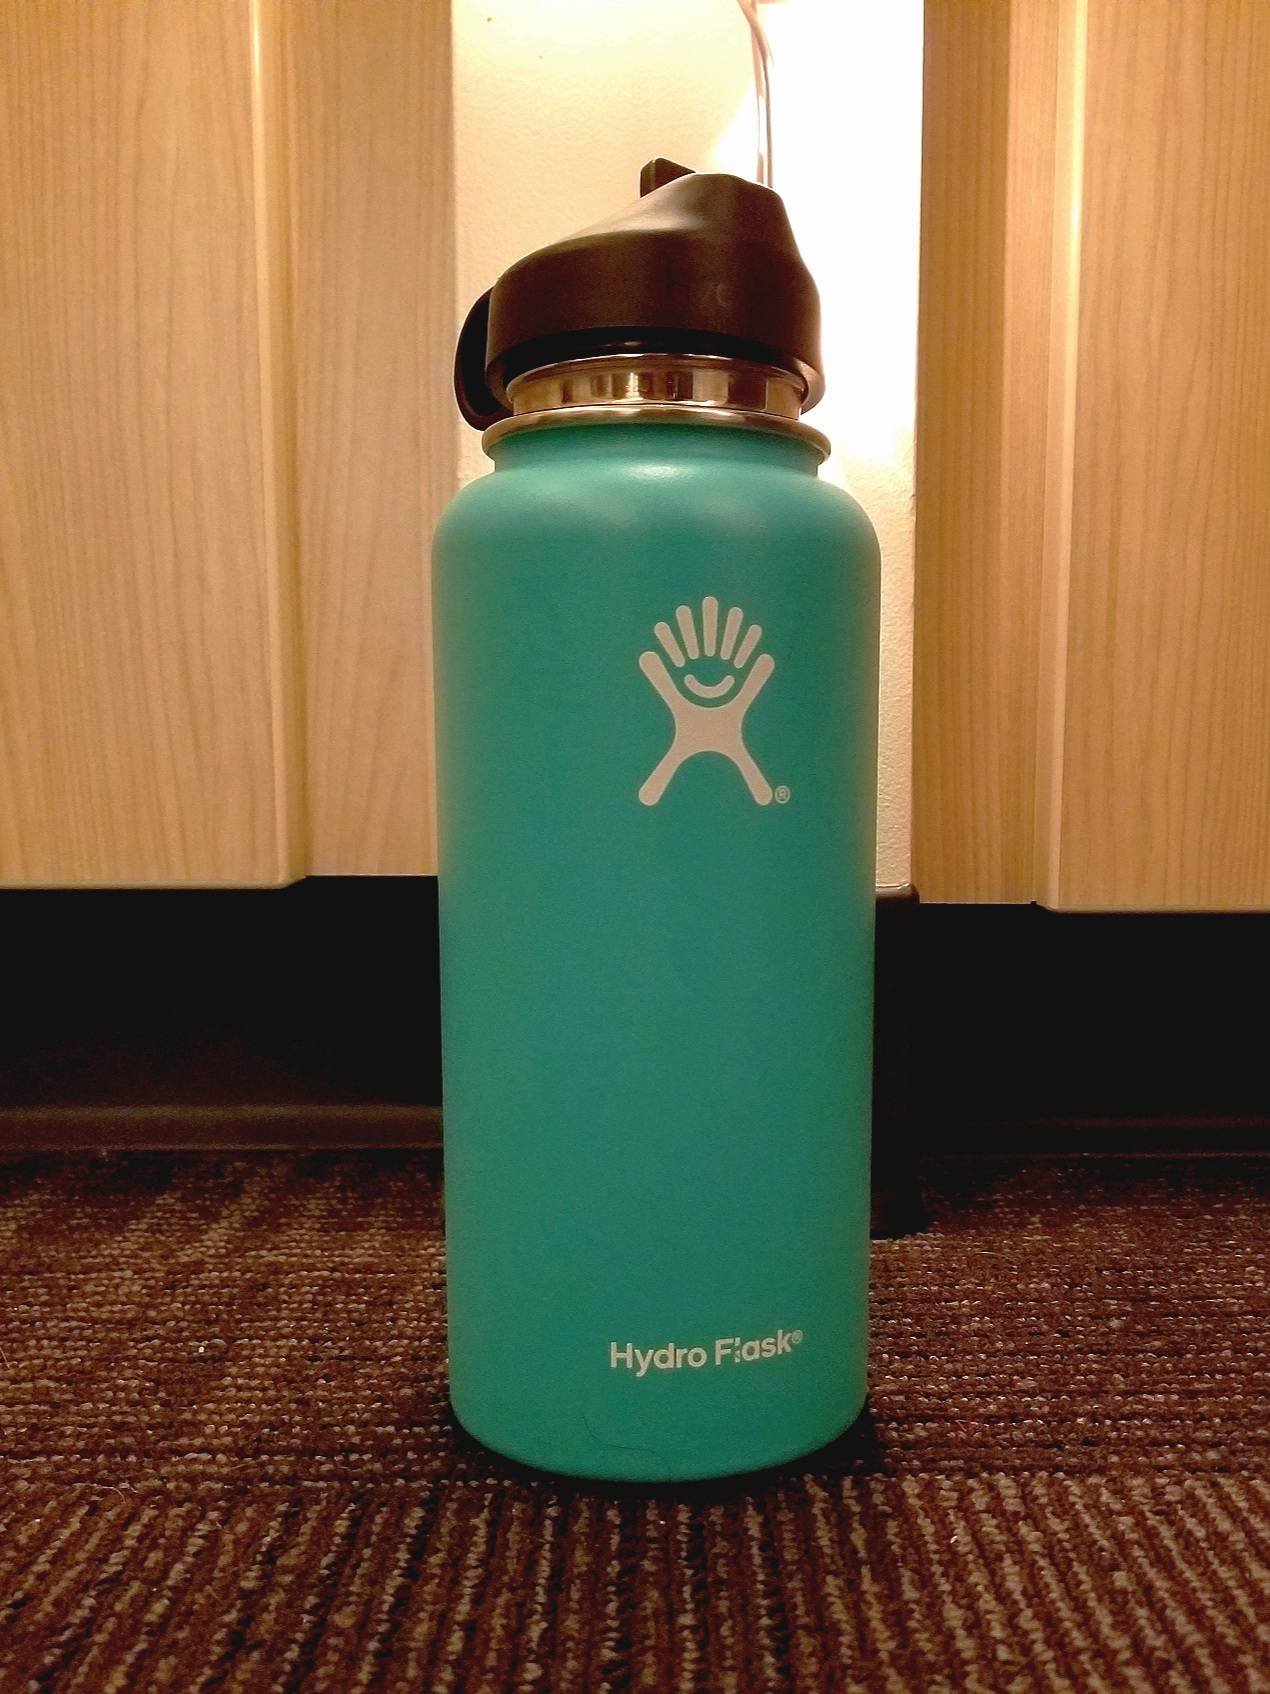 A Hydro Flask stainless steel water bottle. Photo Credit: Meagann Russell